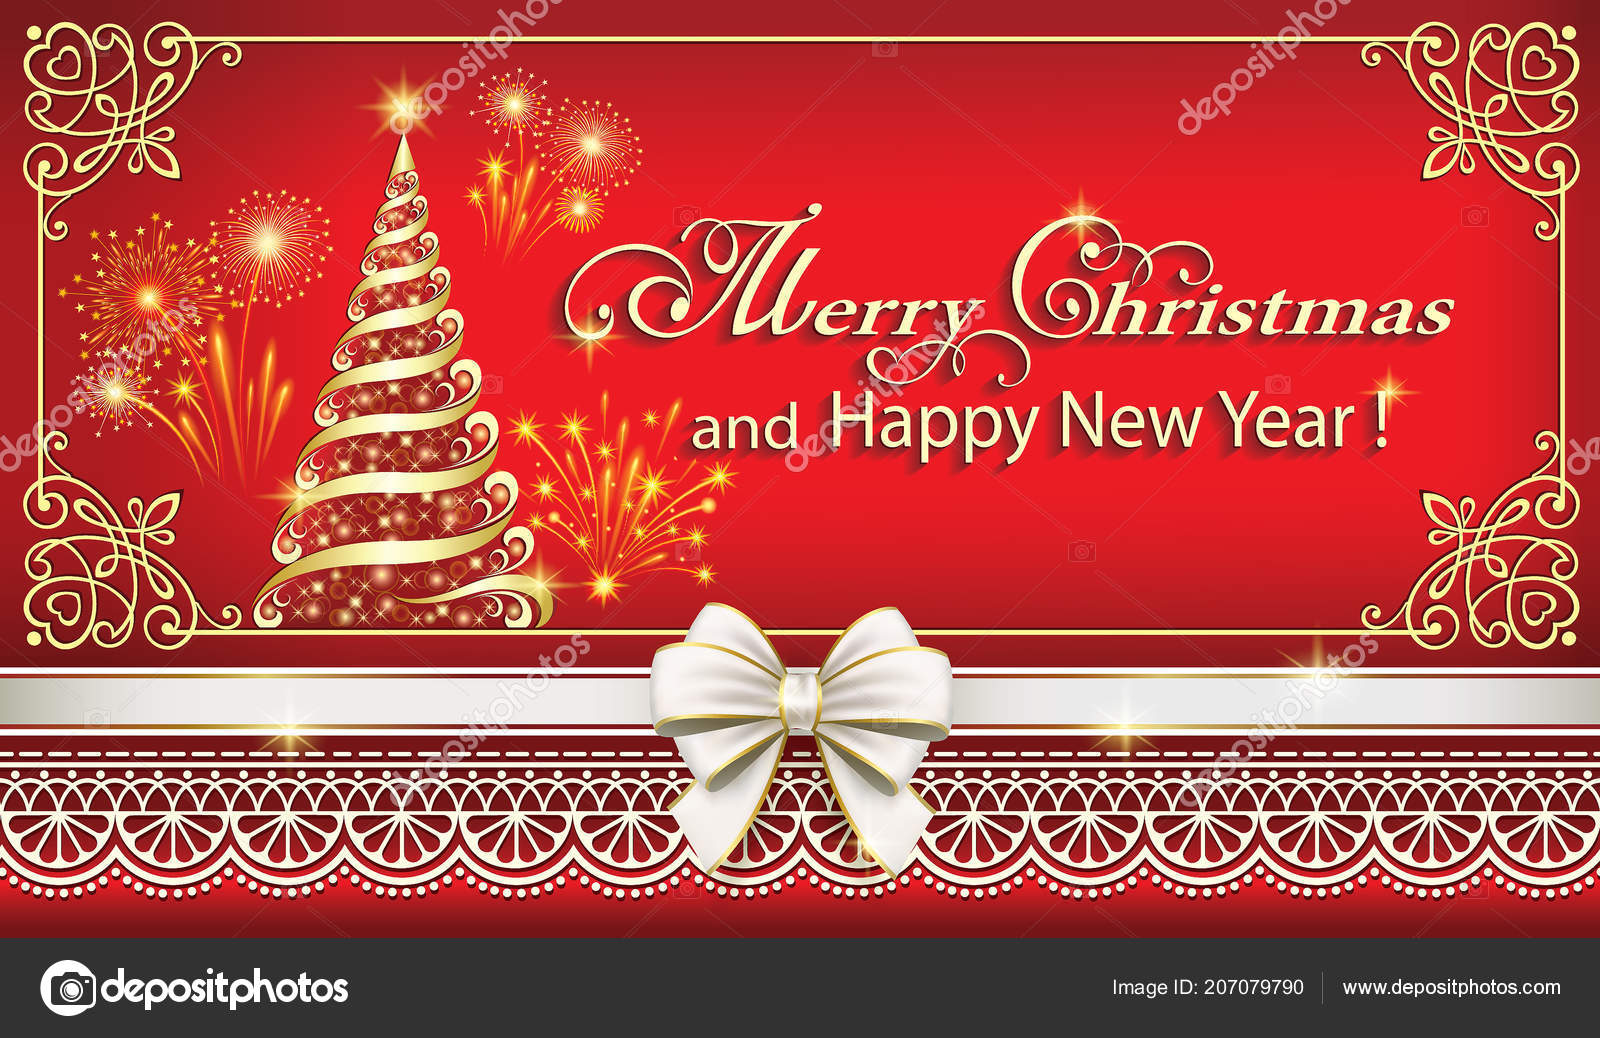 Merry Christmas Happy New Year Background 2019 Vector Illustration ...